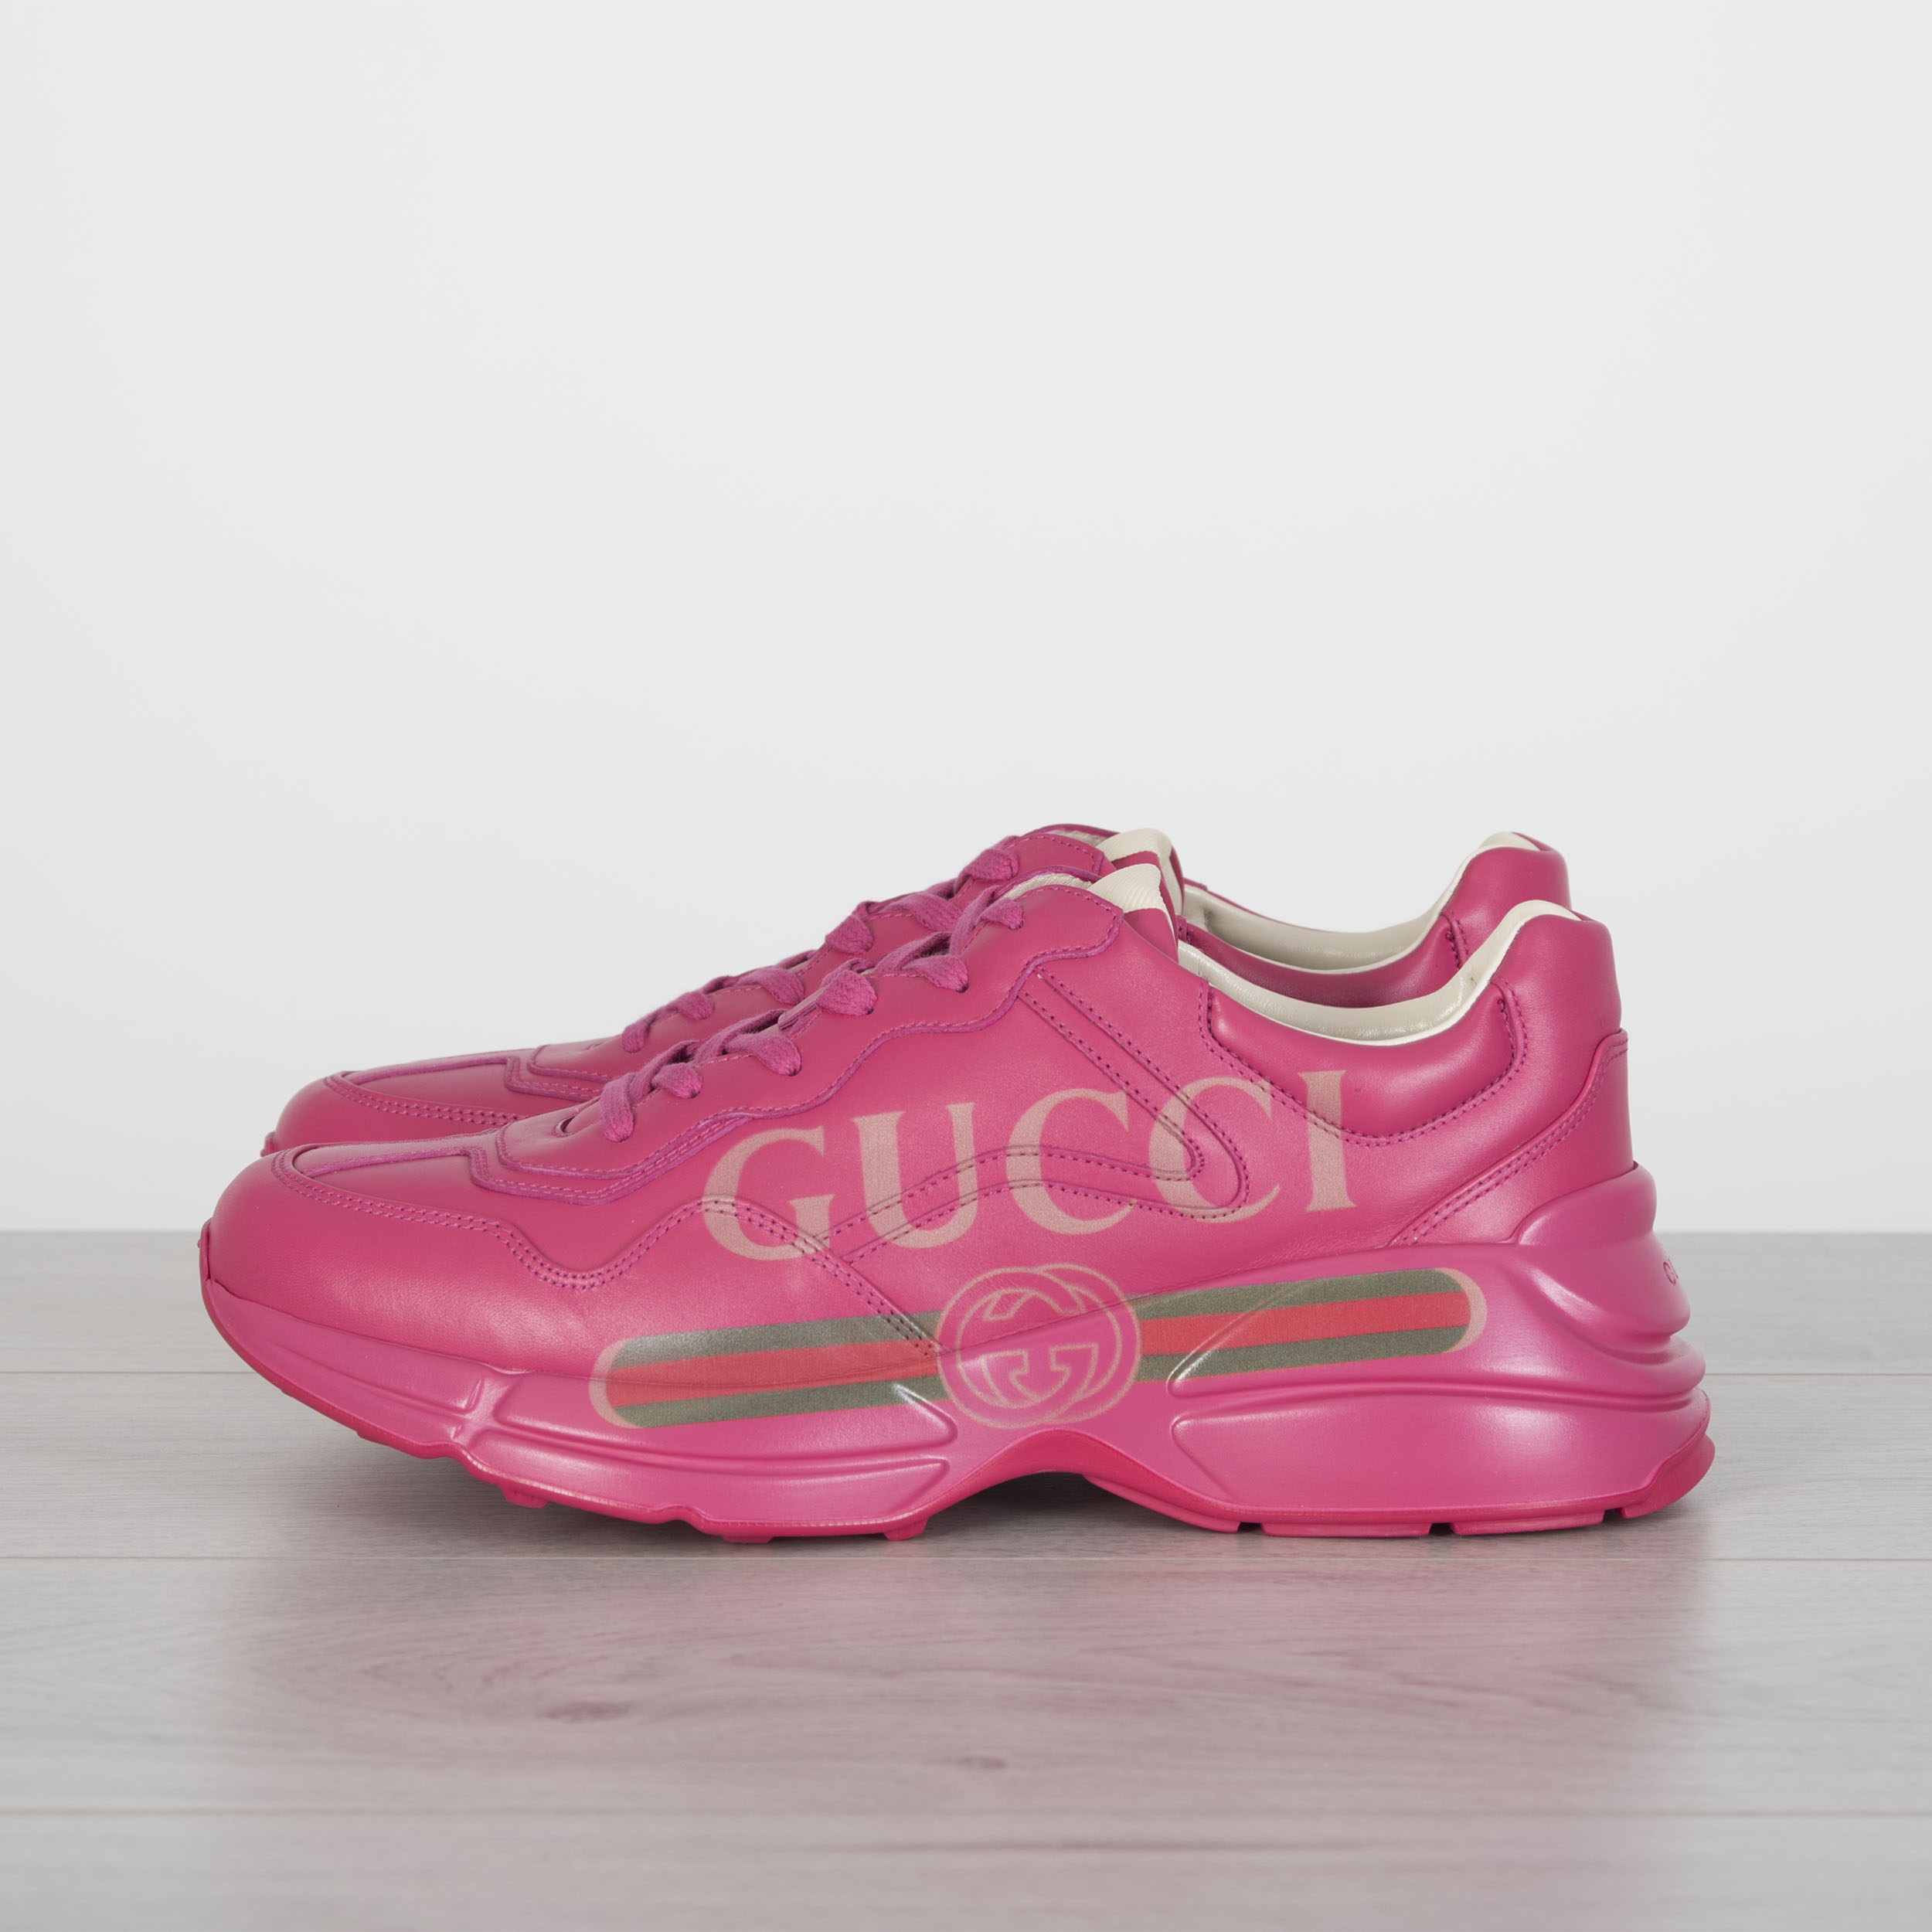 0bd8df961ae GUCCI 890  Rhyton Gucci Logo Sneakers In Pink Leather